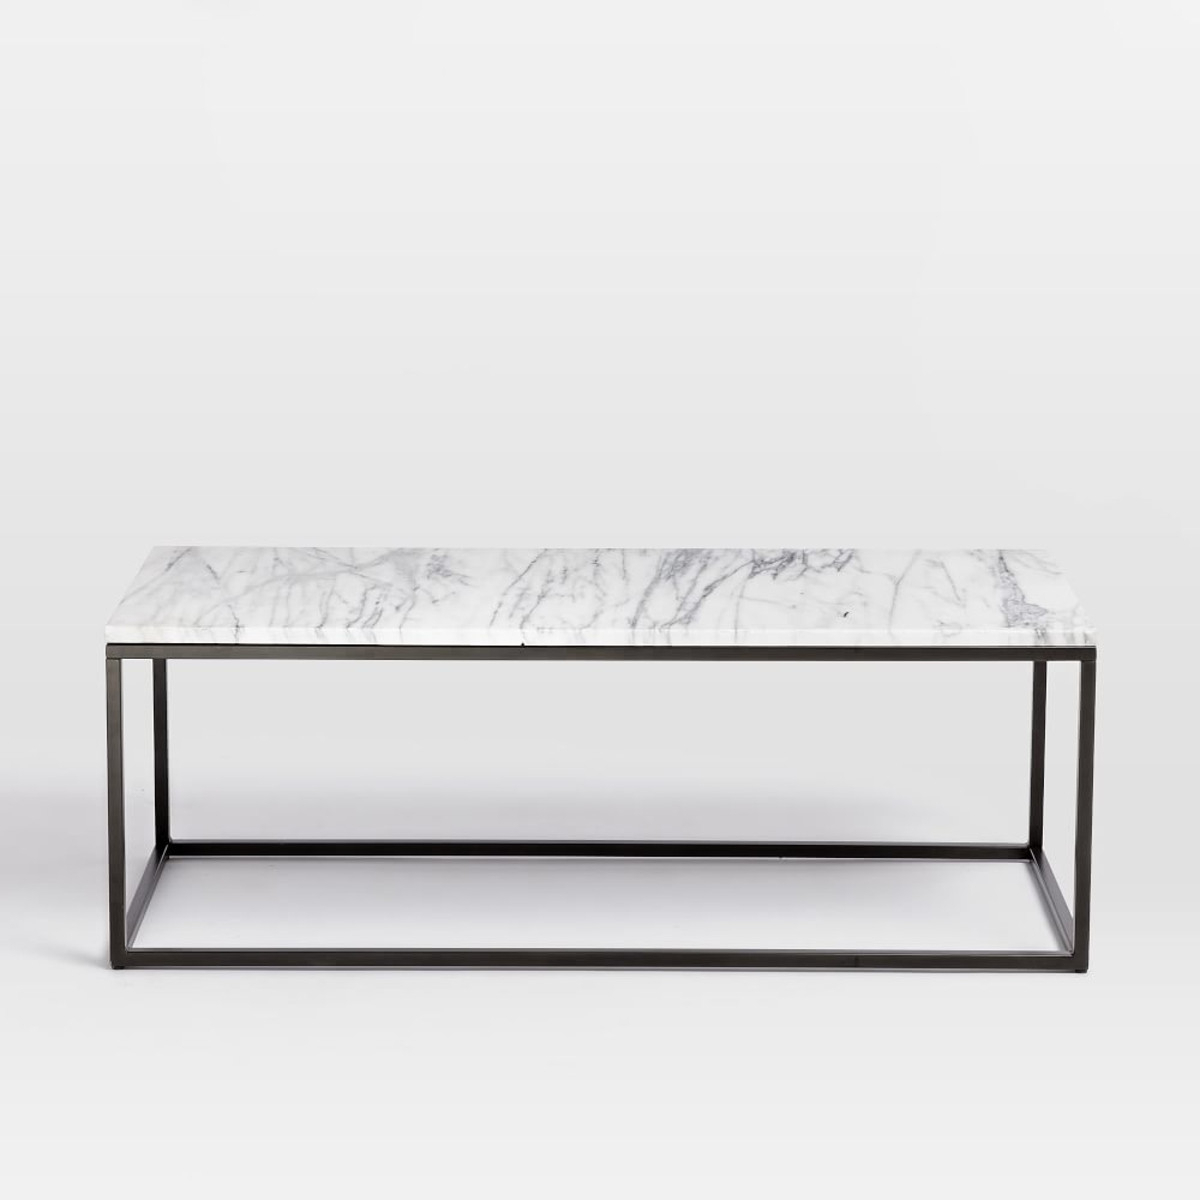 Most Popular Marble Coffee Table West Elm – Marble Coffee Table: Elegant Table To Inside Slab Large Marble Coffee Tables With Brass Base (View 4 of 20)